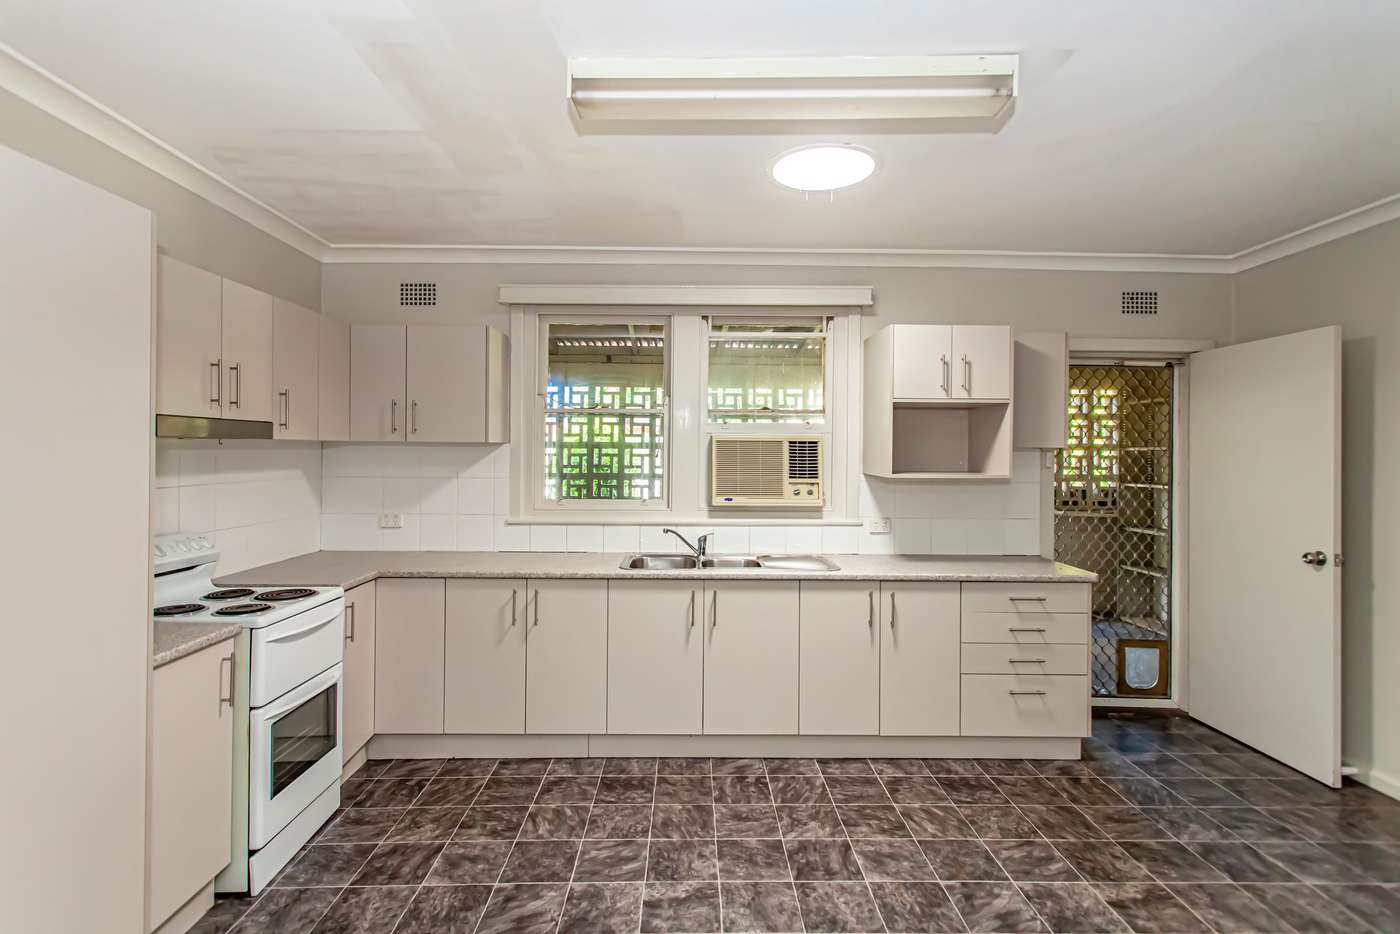 Fifth view of Homely house listing, 139 Kings Road, New Lambton NSW 2305